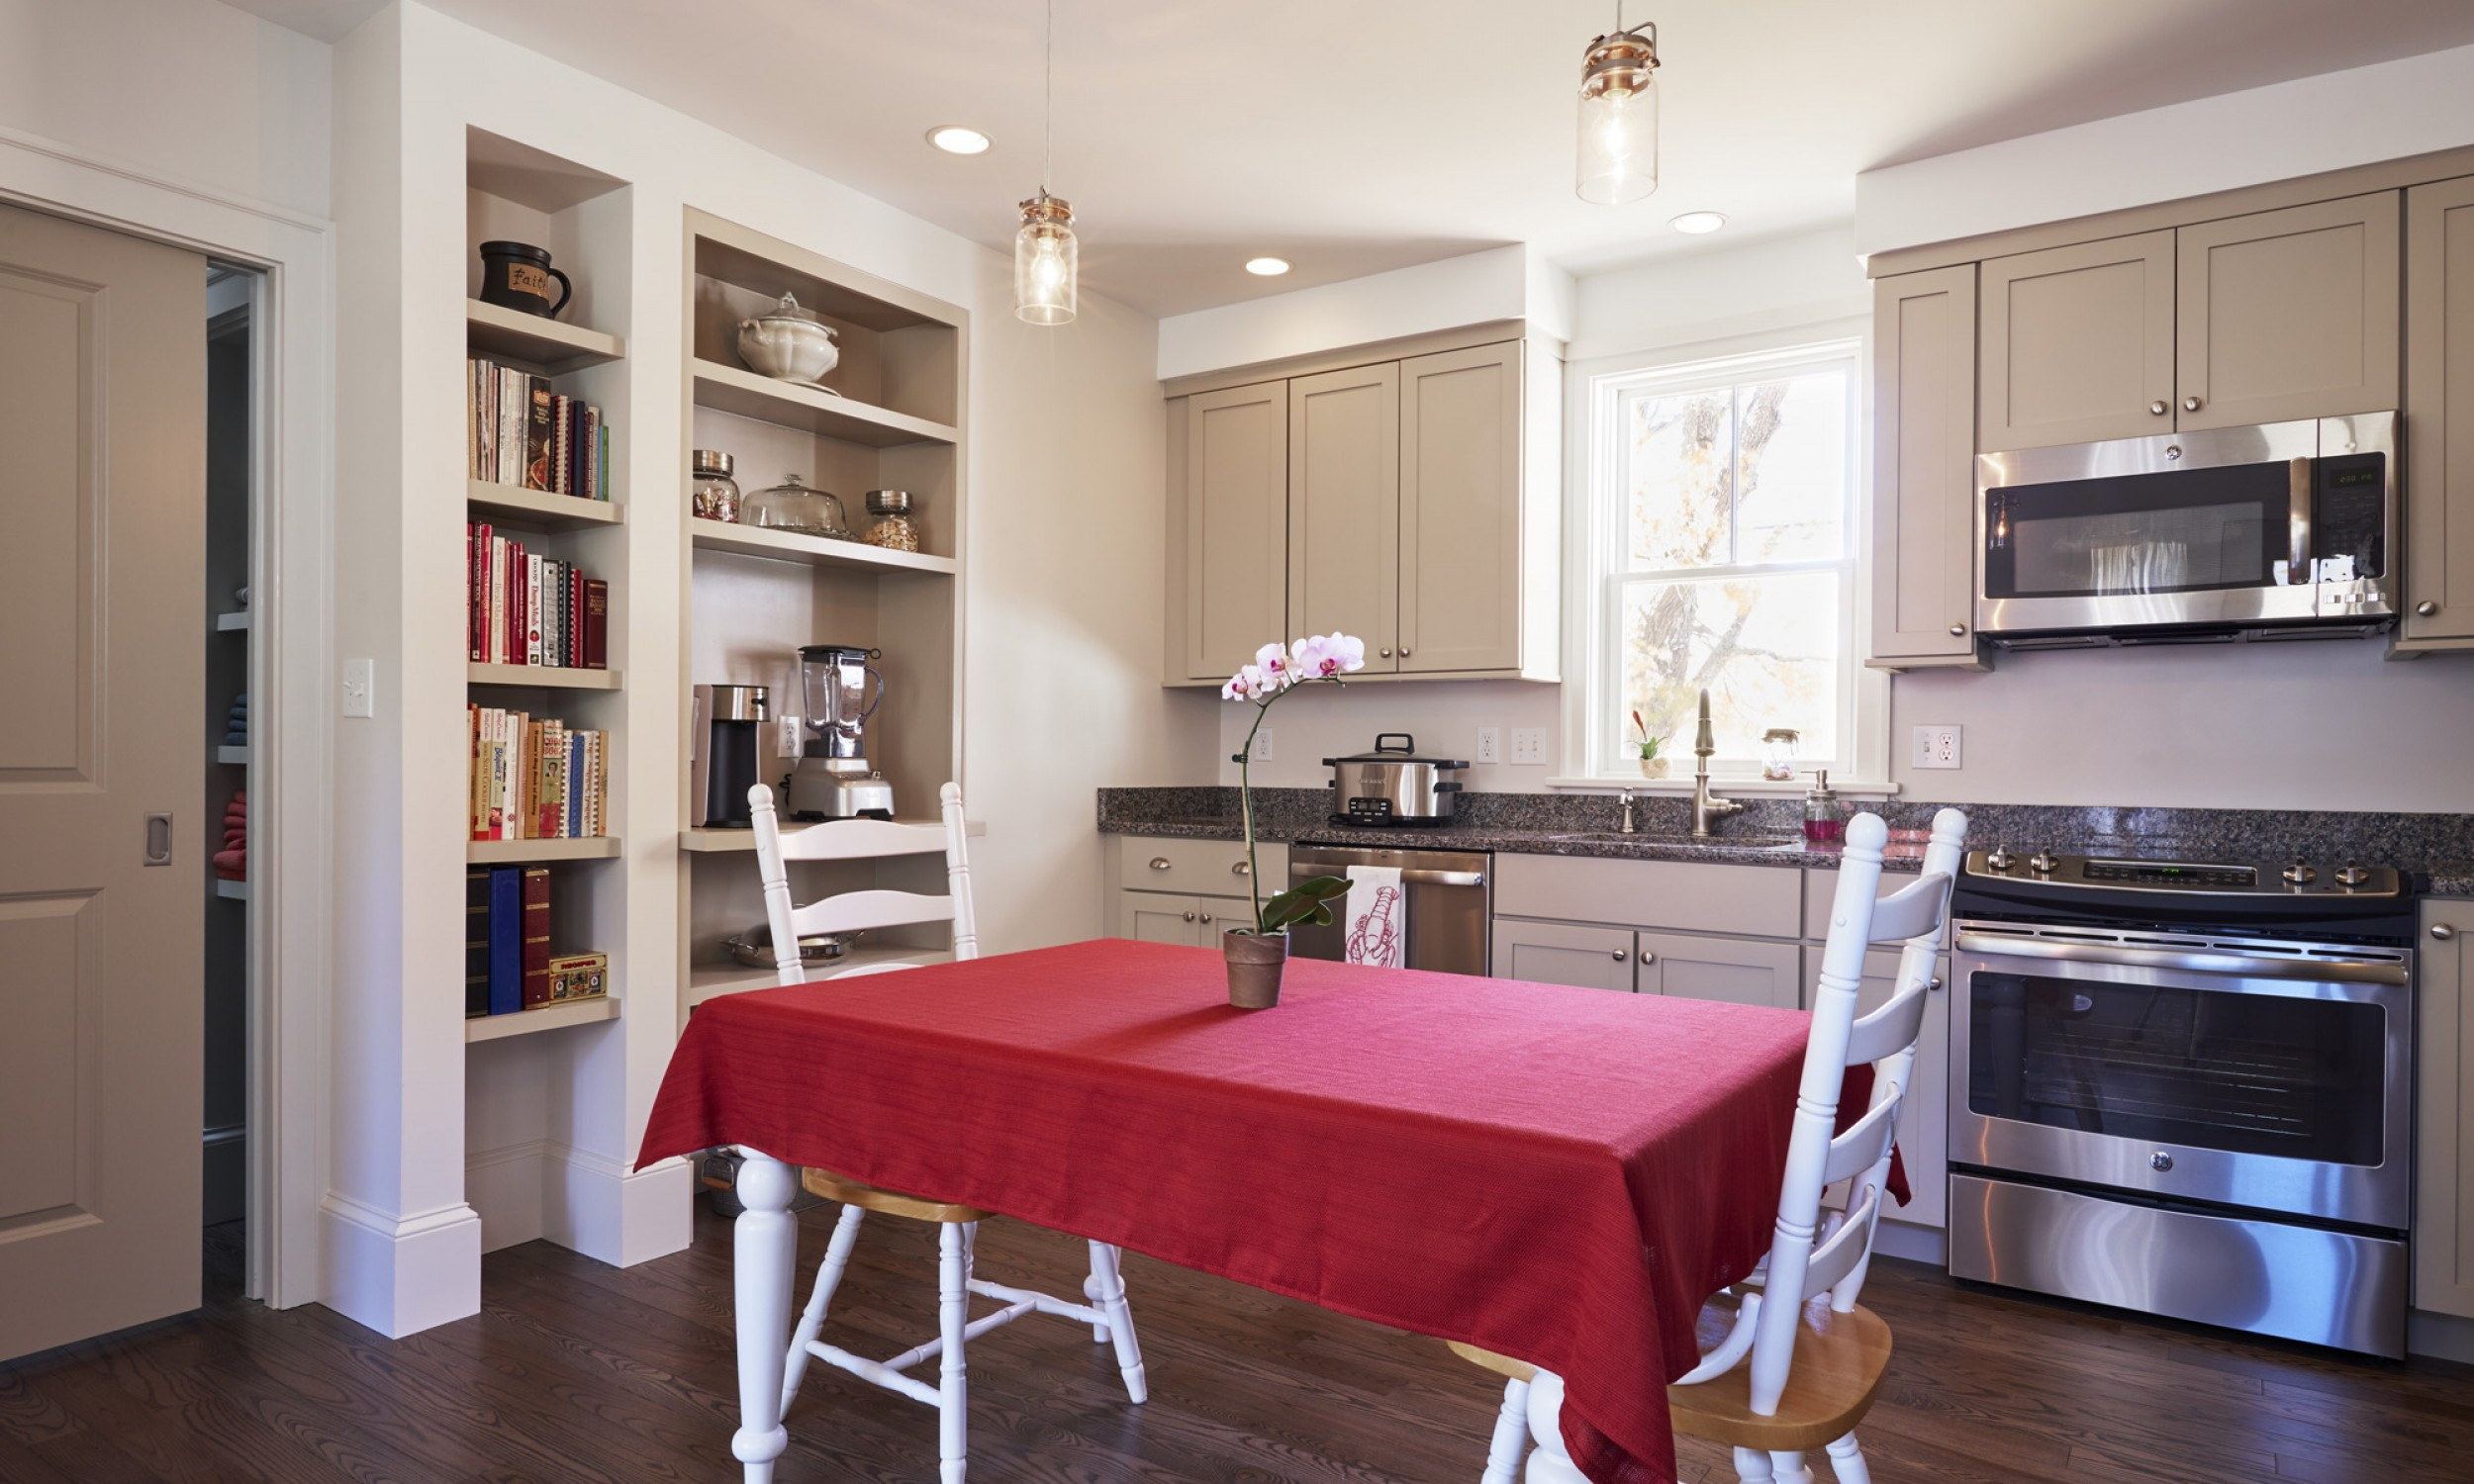 Eat-in Kitchen, Built-in shelves, Maine Architect